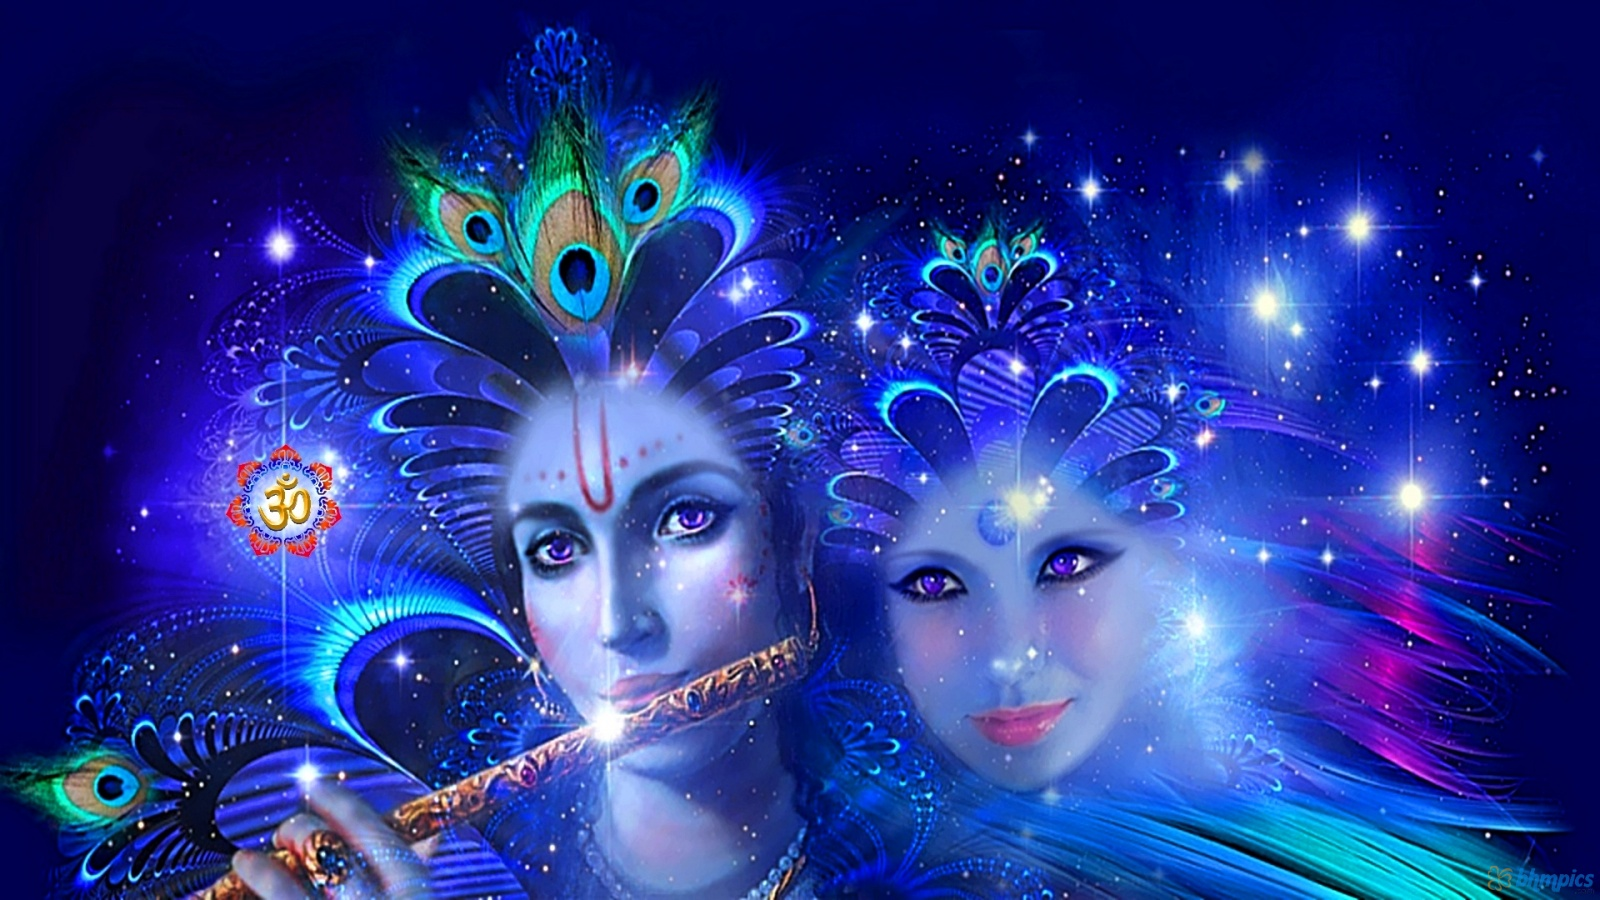 3d Hd Radha Krishna Wallpaper Desktop Hd Wallpaper Download Free Image Picture Photo On 1 Wallpaper